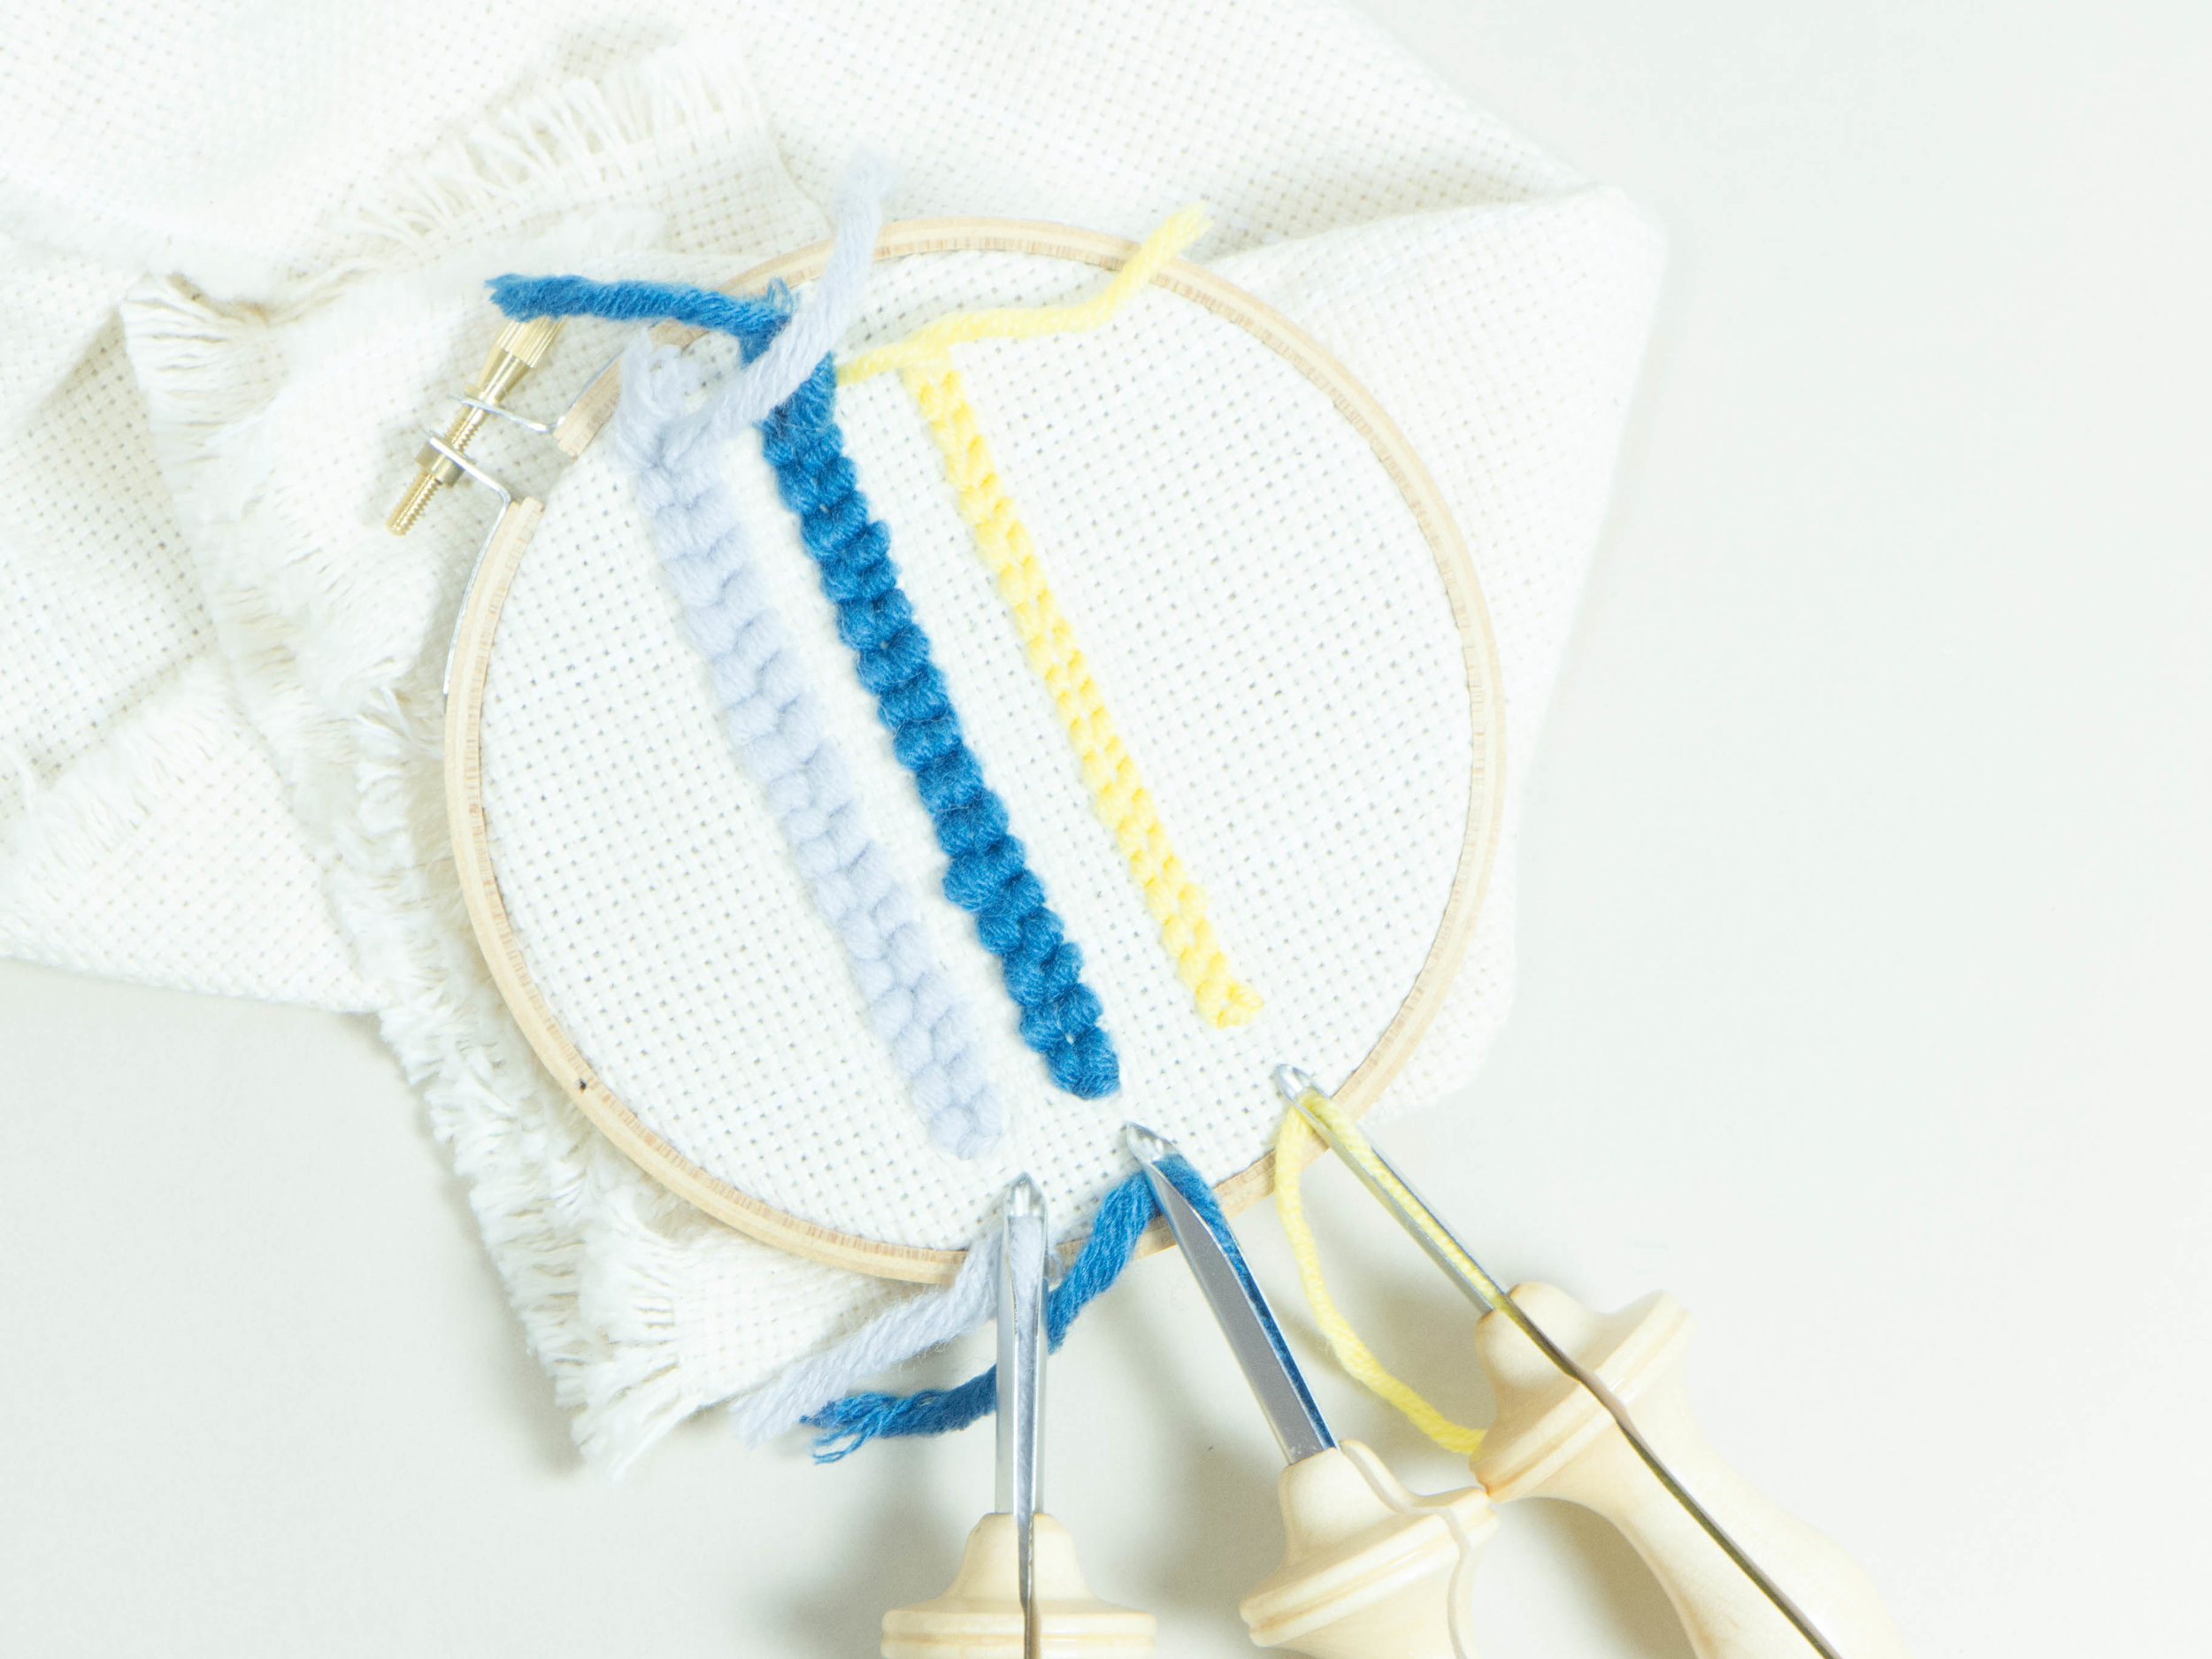 From left to right: #10 Regular with light blue yarn, #9 Regular with blue yarn,  #10 Fine  with yellow yarn.